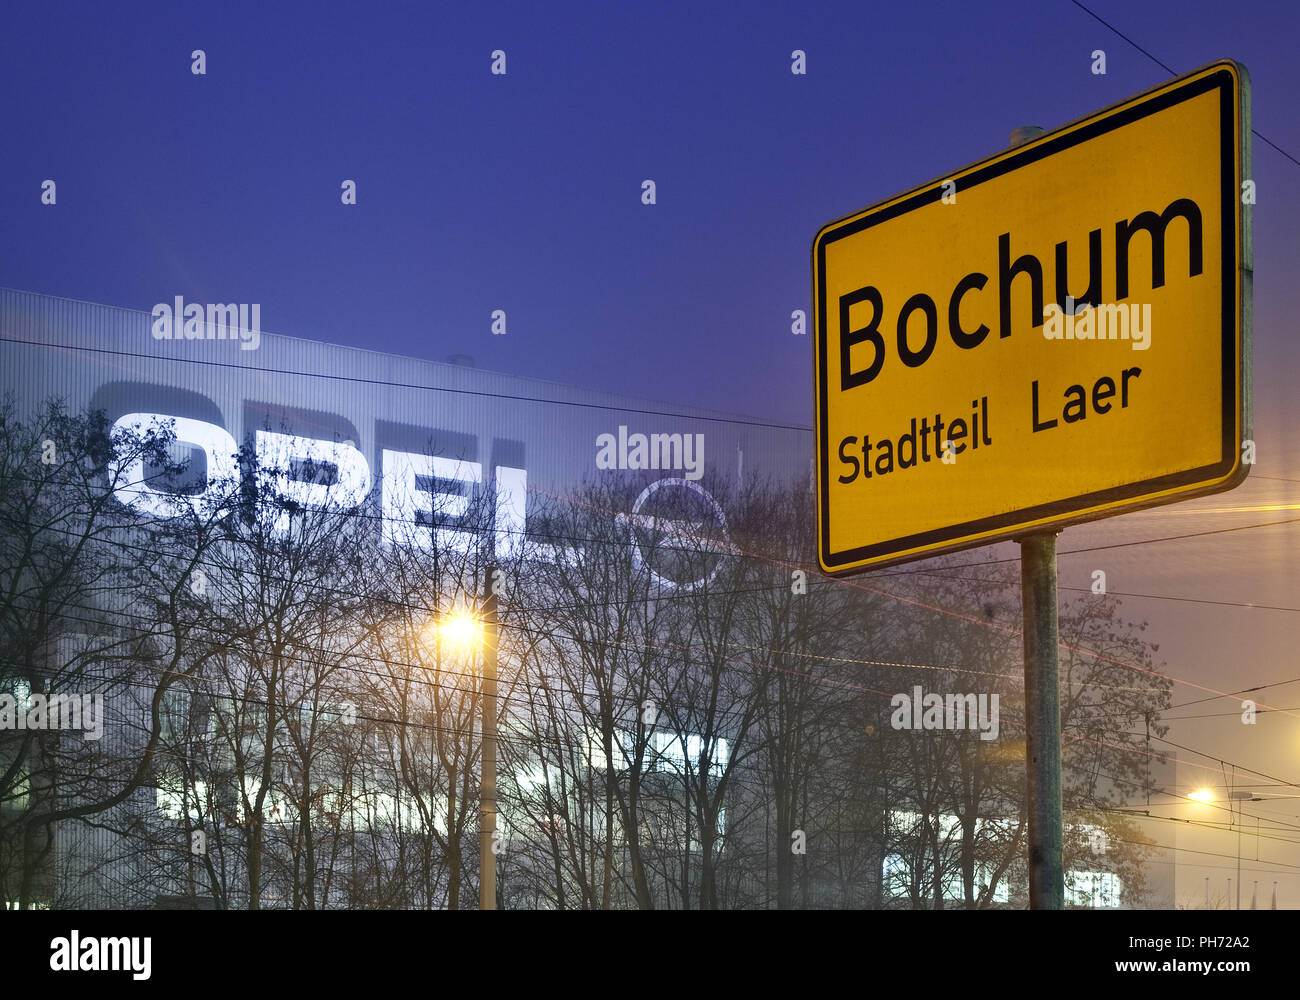 Opel factories in Bochum close in 2014, Germany. - Stock Image